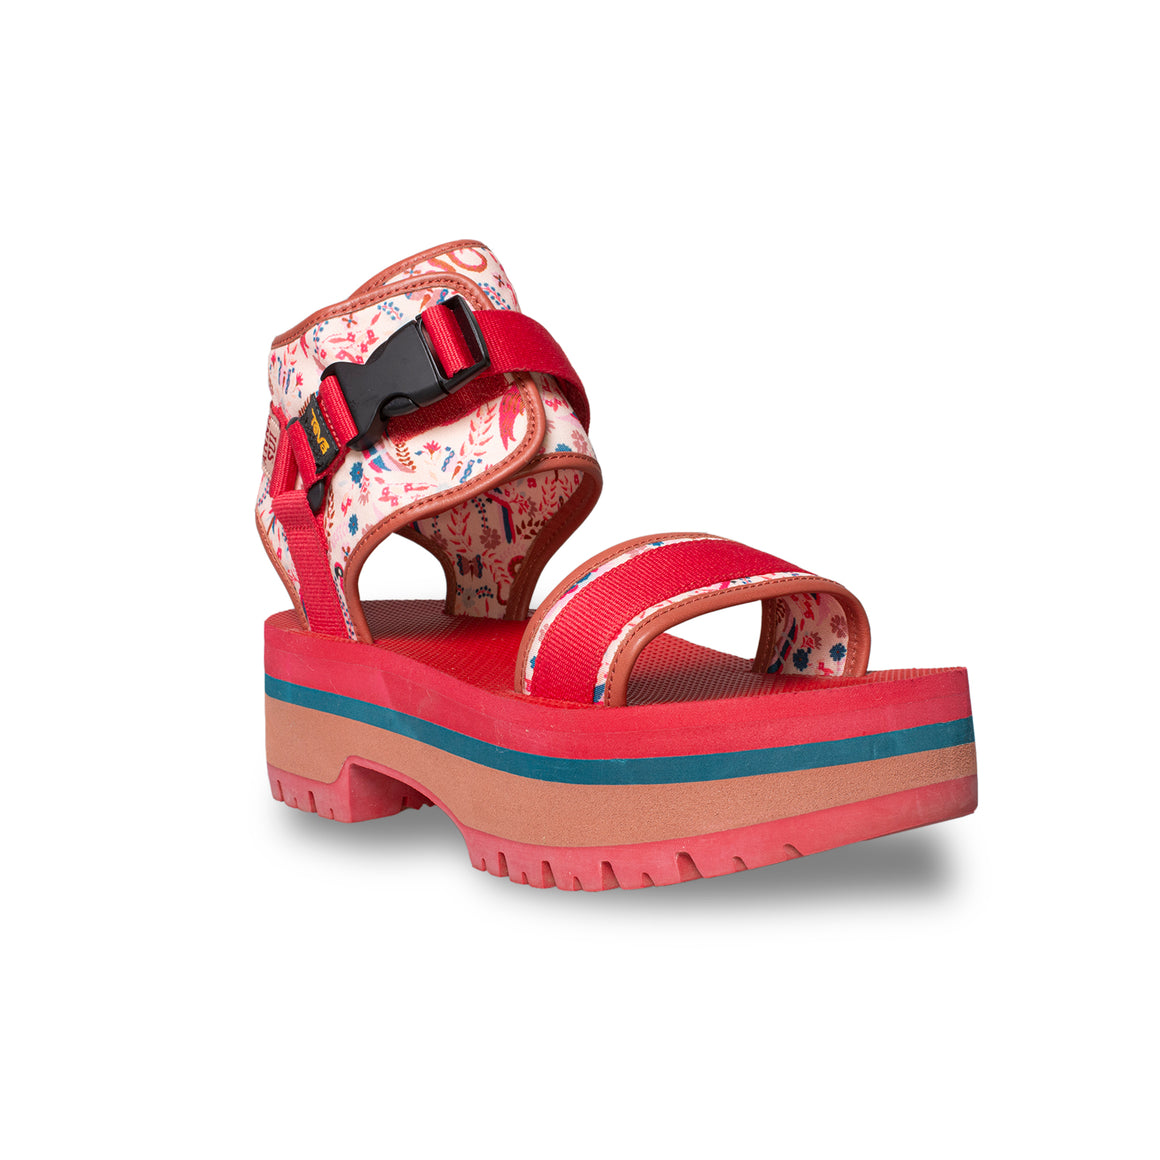 Teva India Jewel Anna Sui Lollipop Sandals - Women's